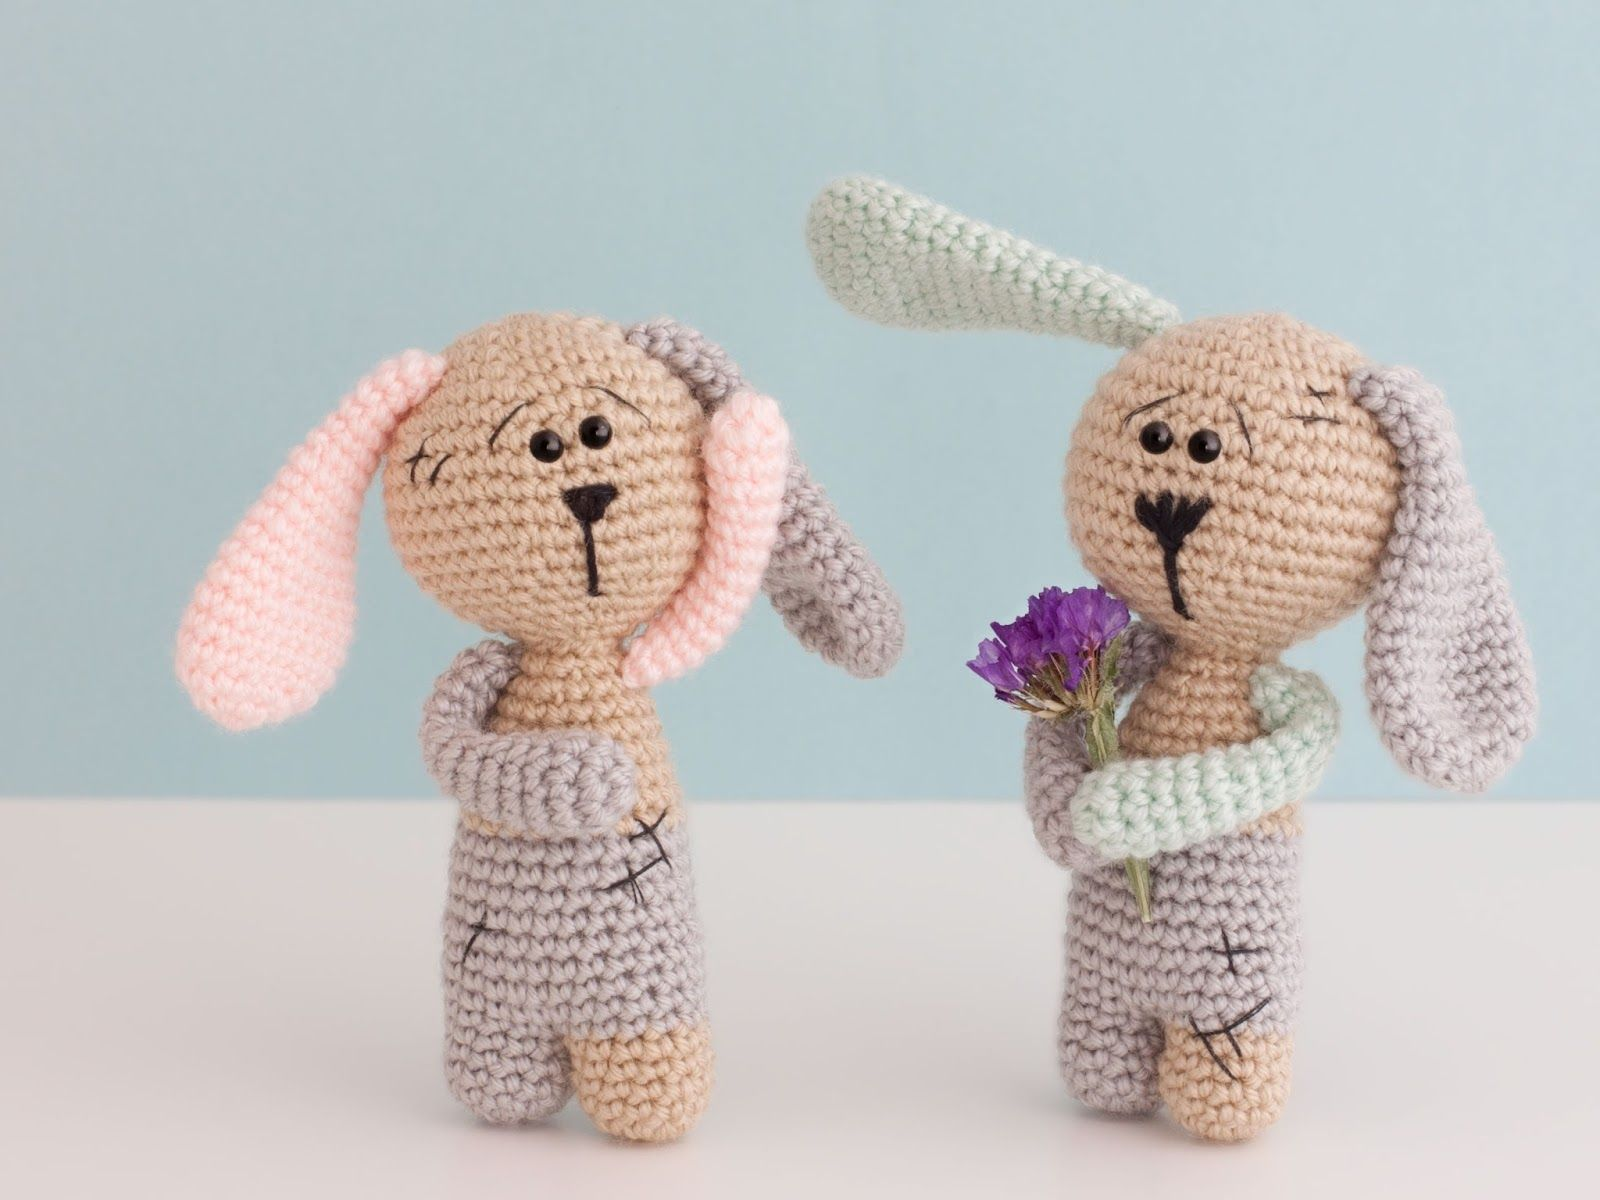 Amigurumi dog free crochet pattern tutorial http amigurumi dog free crochet pattern tutorial so cute luv it bankloansurffo Image collections